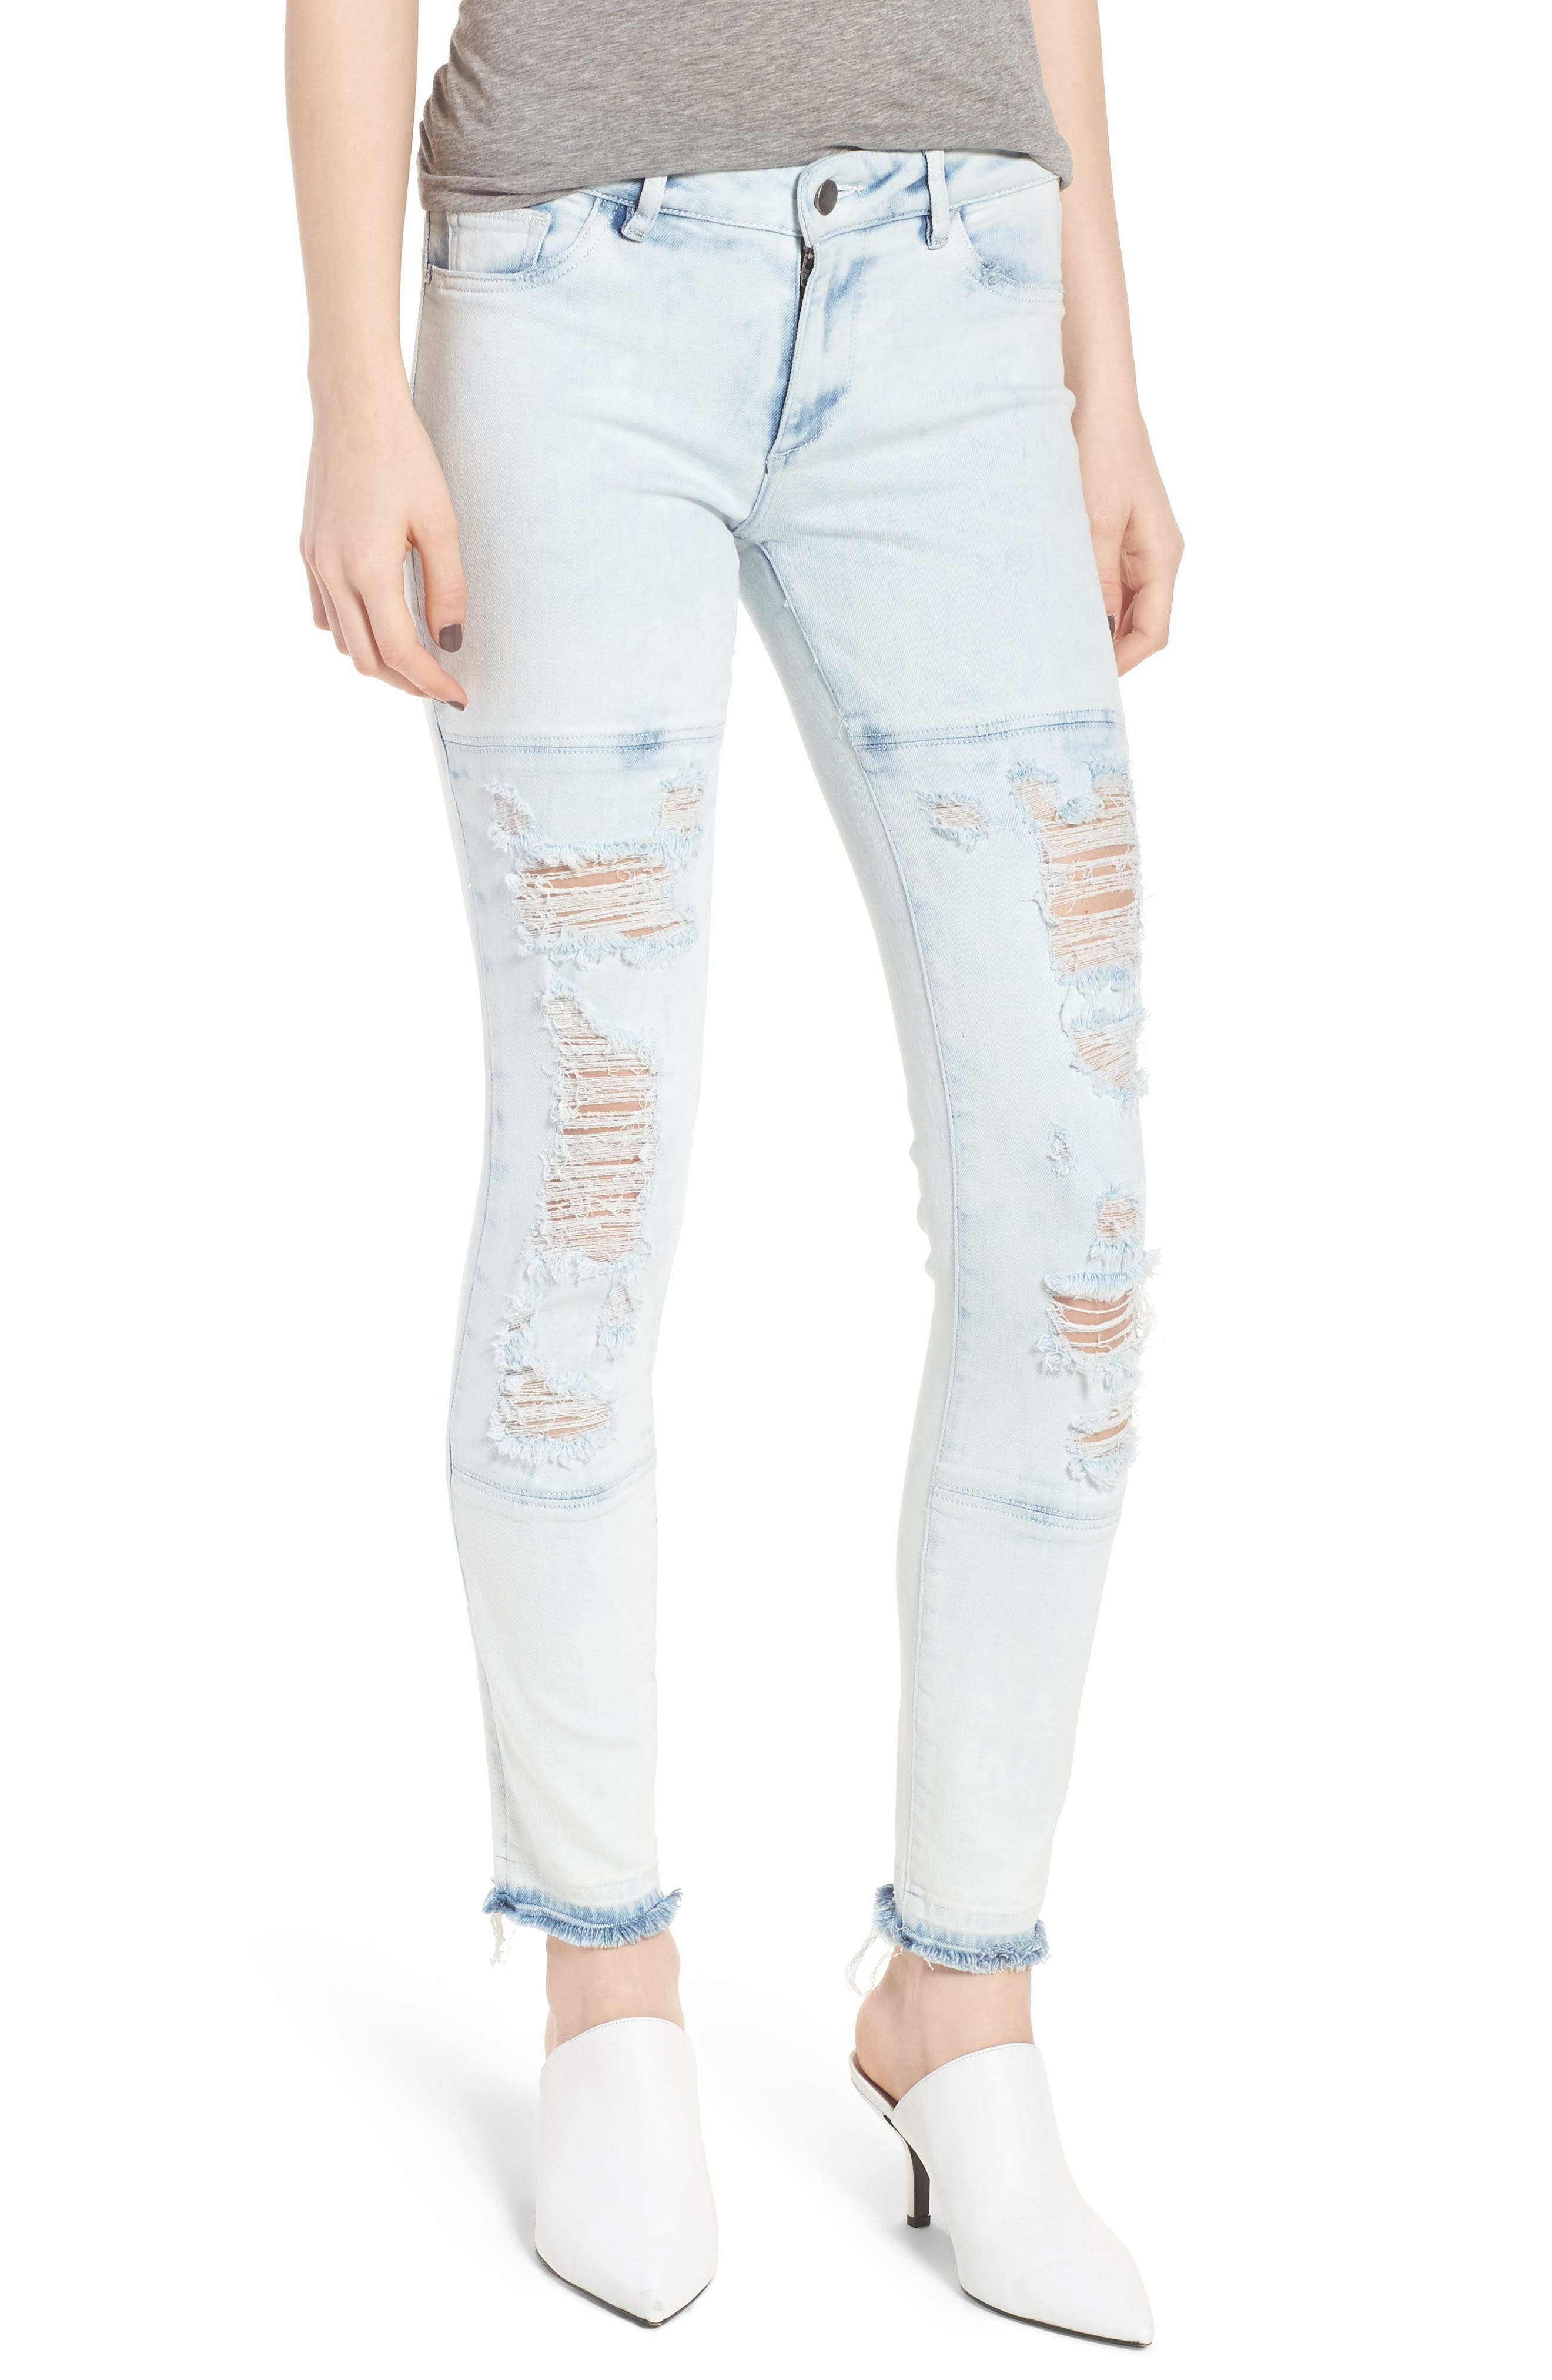 Emma Power Legging Ripped Skinny Jeans,                         Main,                         color, 020